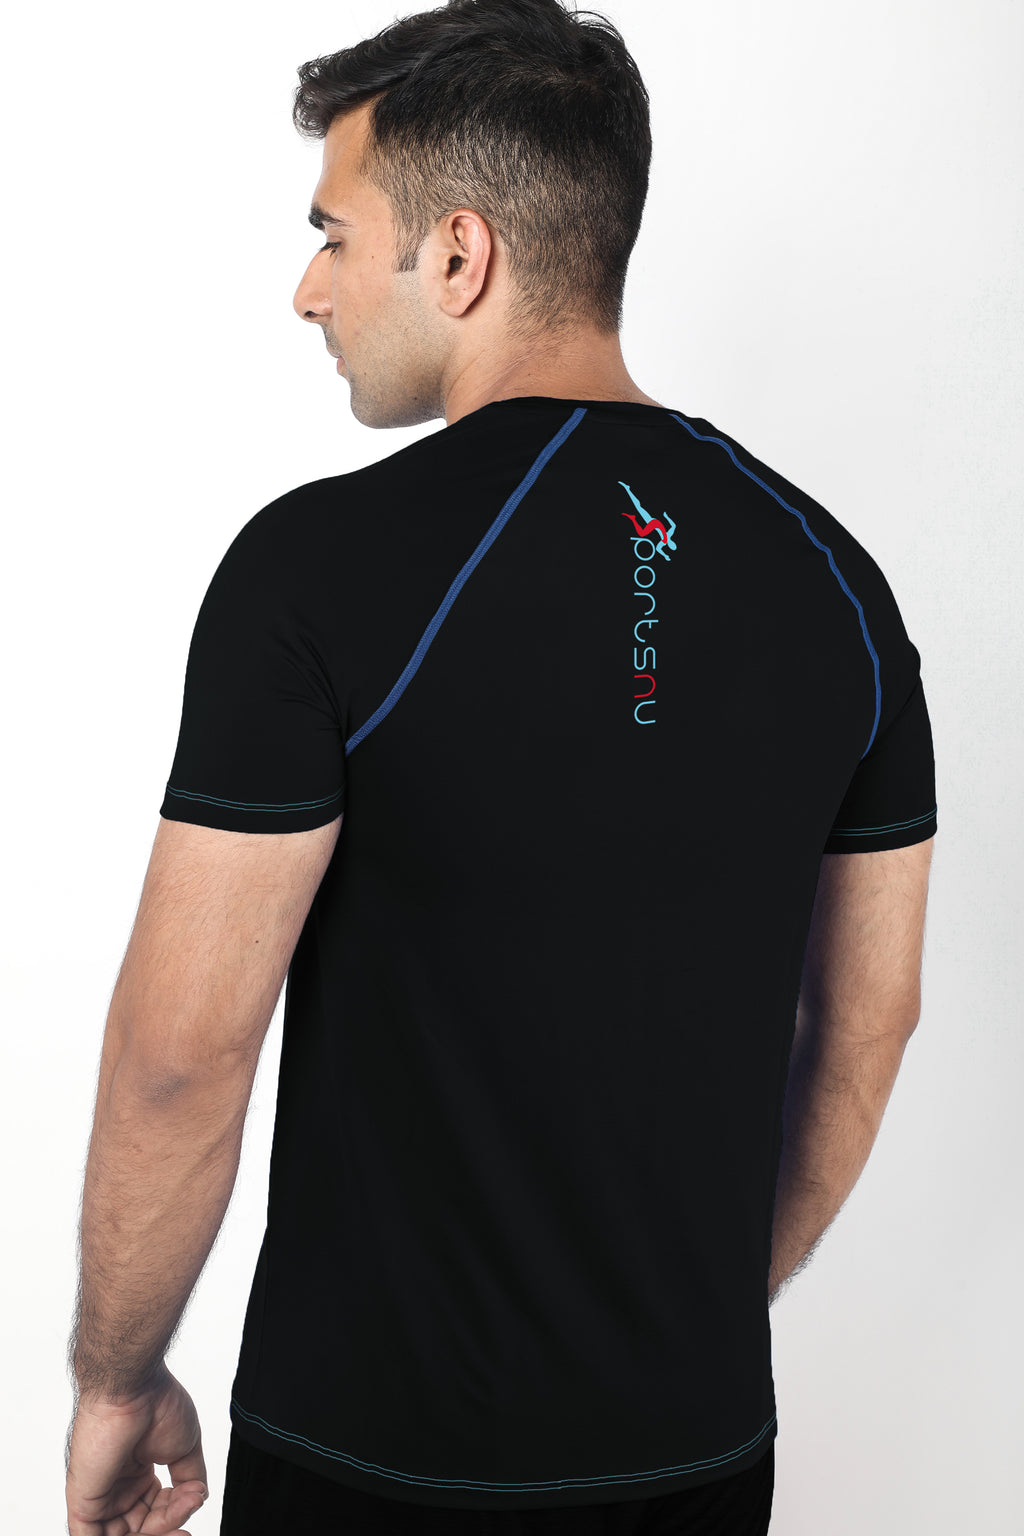 Train Raglan Gym T-Shirt For Men - Black